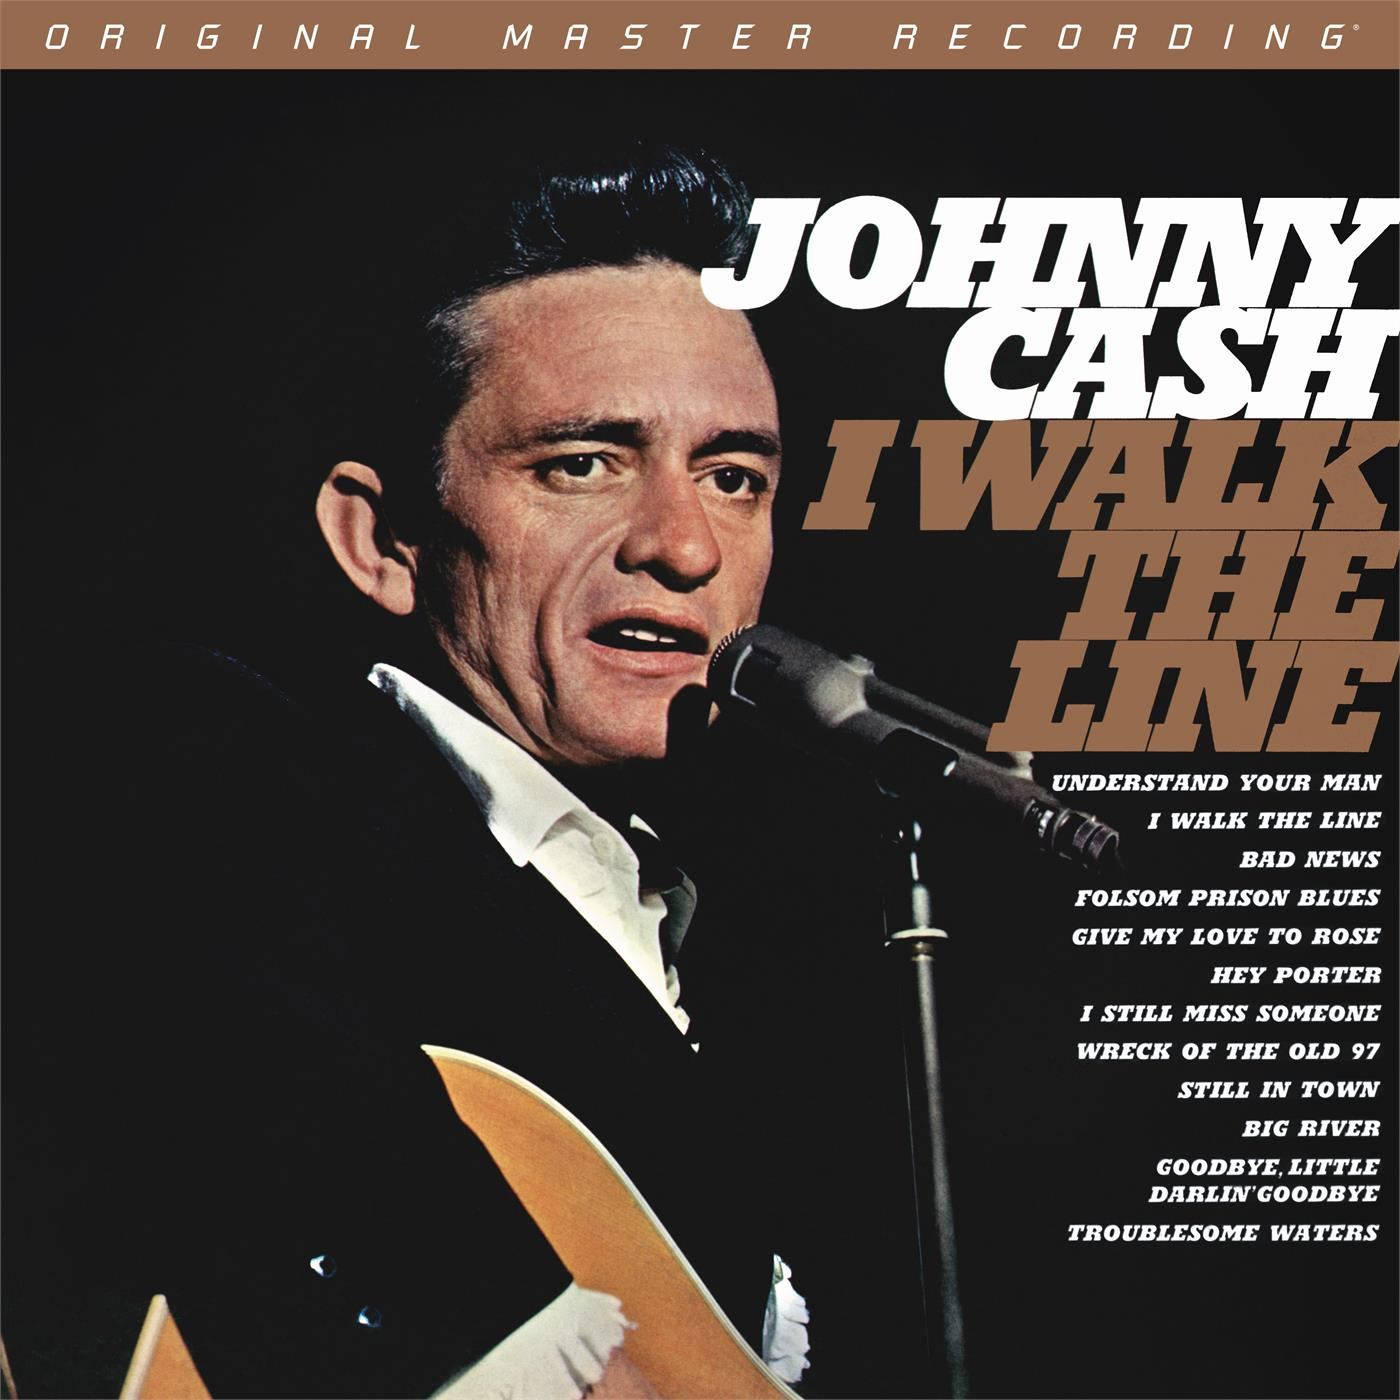 UDSACD2197 Mobile Fidelity  Johnny Cash I Walk The Line - LTD (SACD-Hybrid)